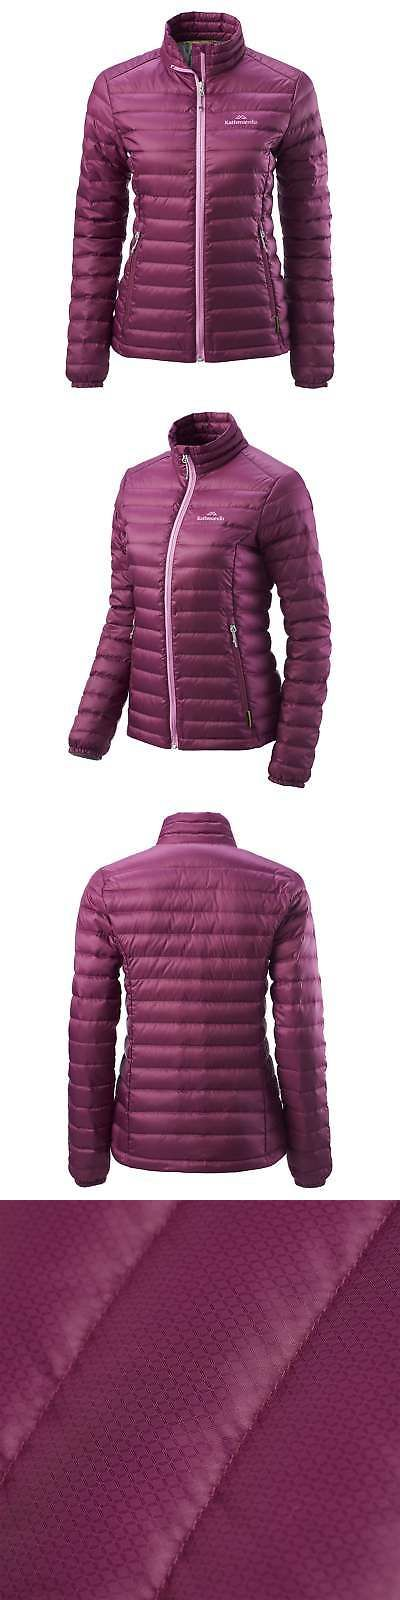 71ac78351f6 ... Jackets and Vests 59285  Kathmandu Heli Womens Lightweight Duck Down  Coat Warm Puffer Jacket V2